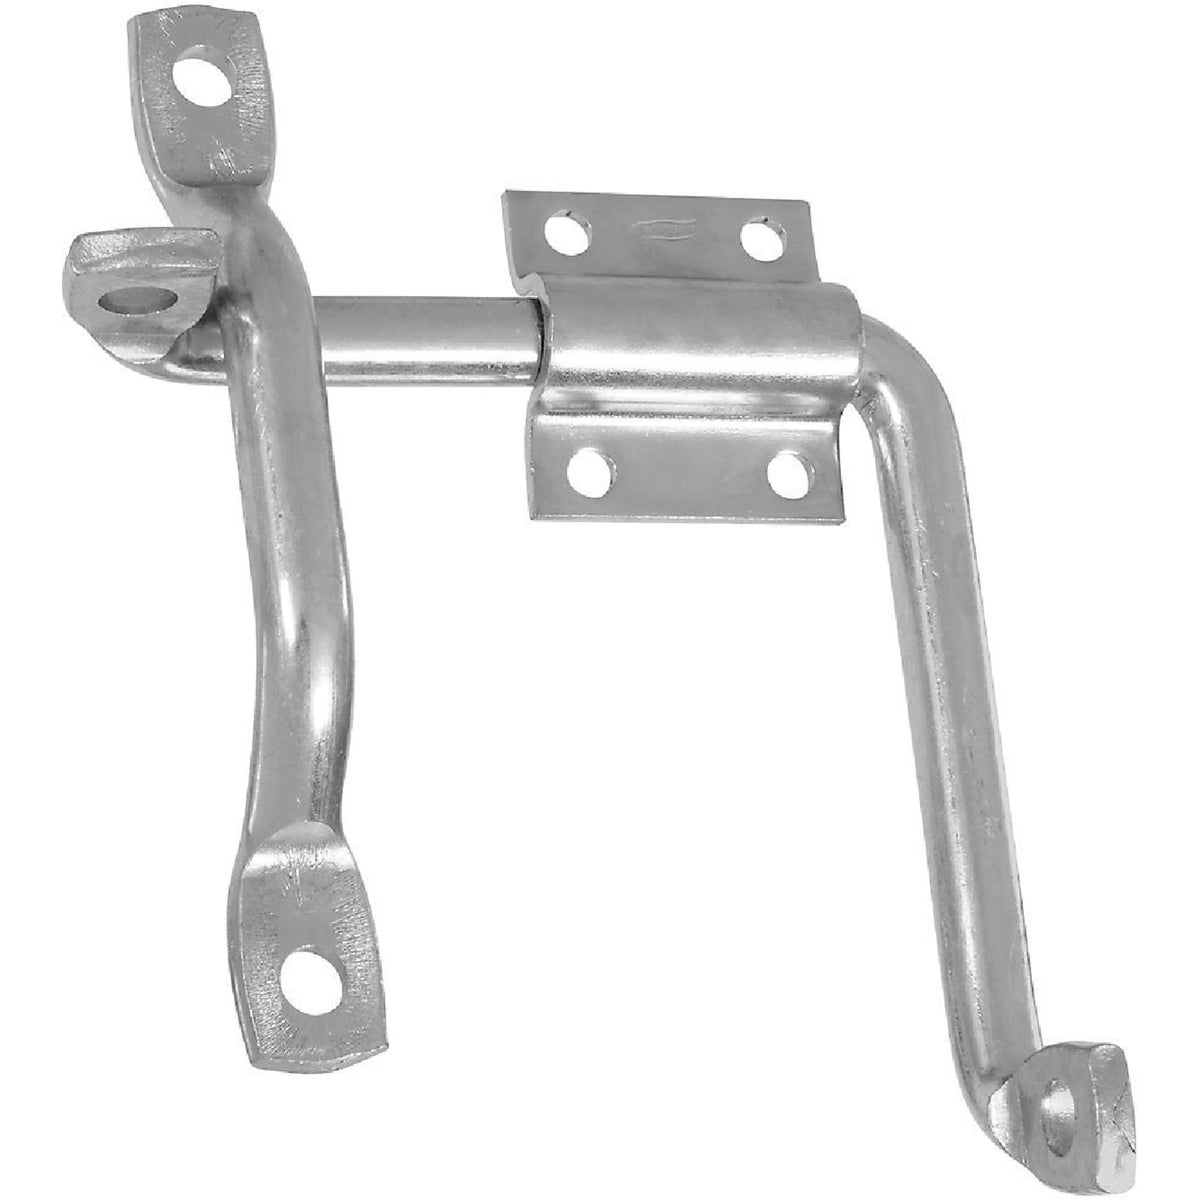 ZINC DOOR & GATE LATCH - N156042 by National Mfg Co